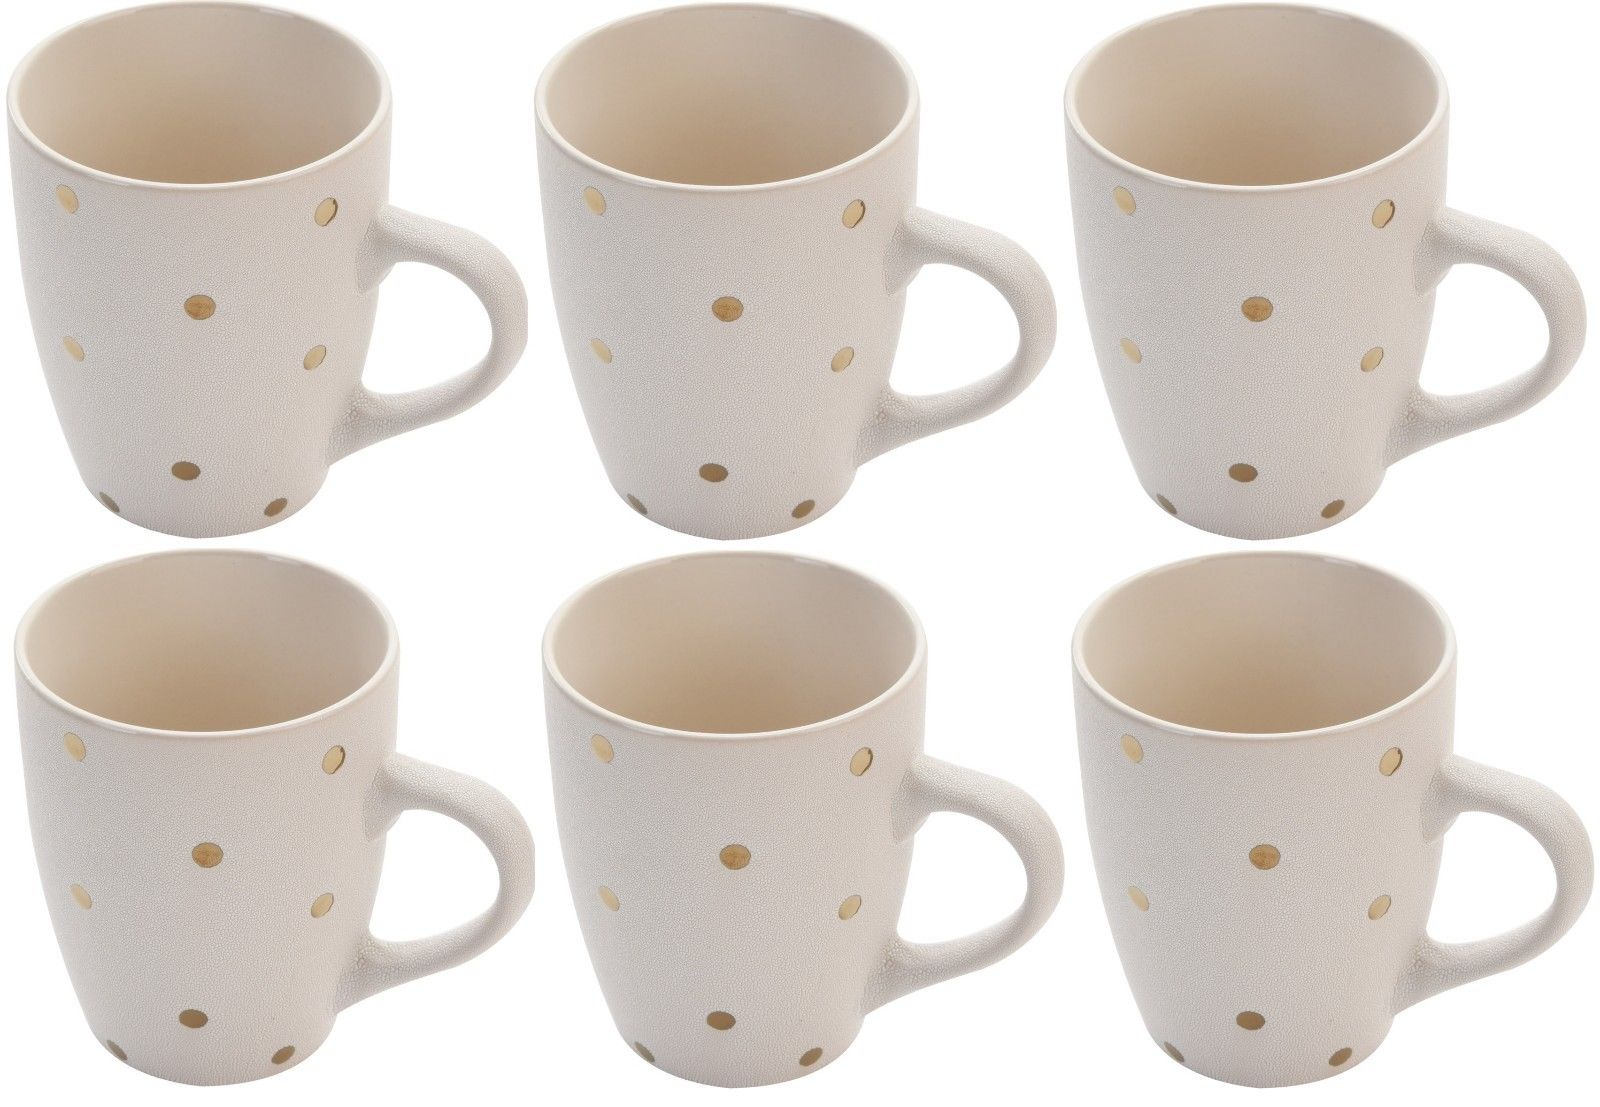 Set of 6 White Or Pink Textured Mugs With Gold Polka Dots